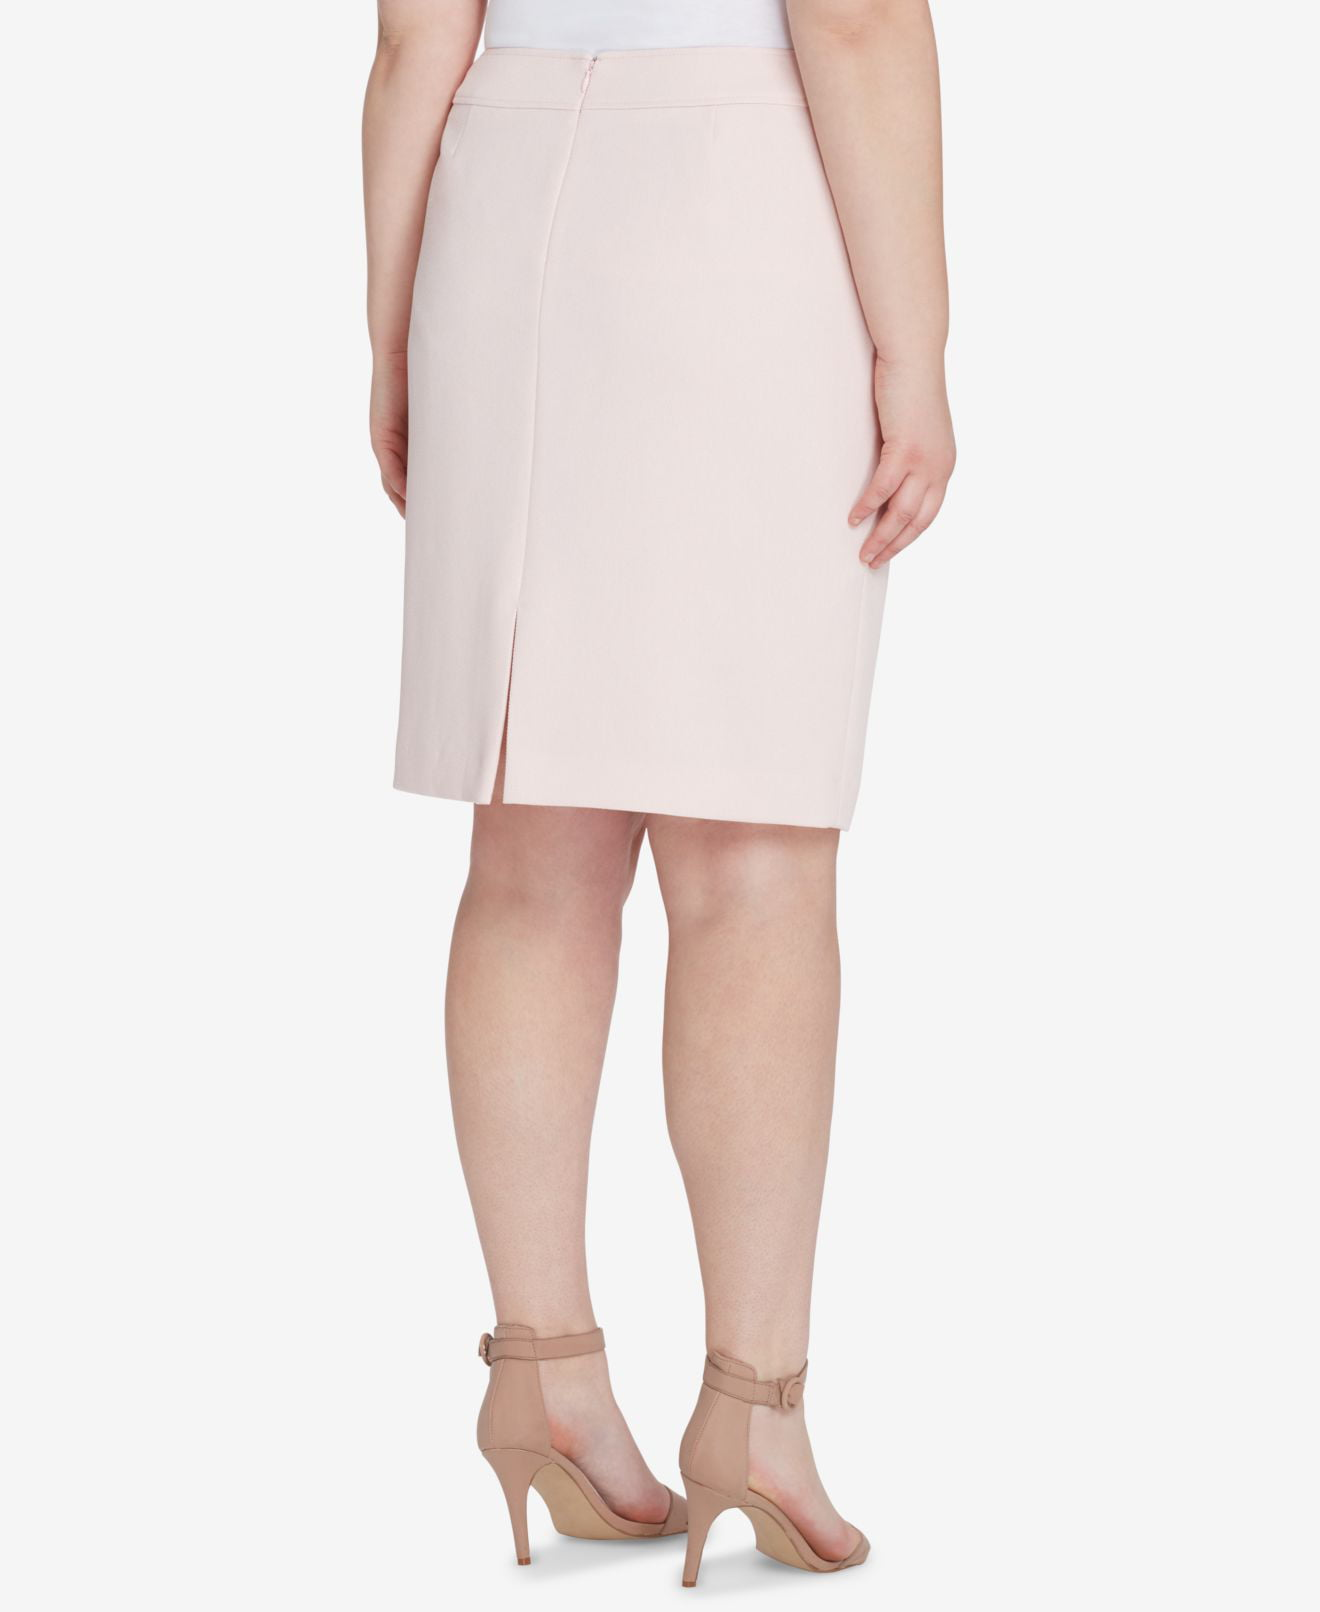 0fe9cb6fa1 Light Grey Pencil Skirt | Saddha